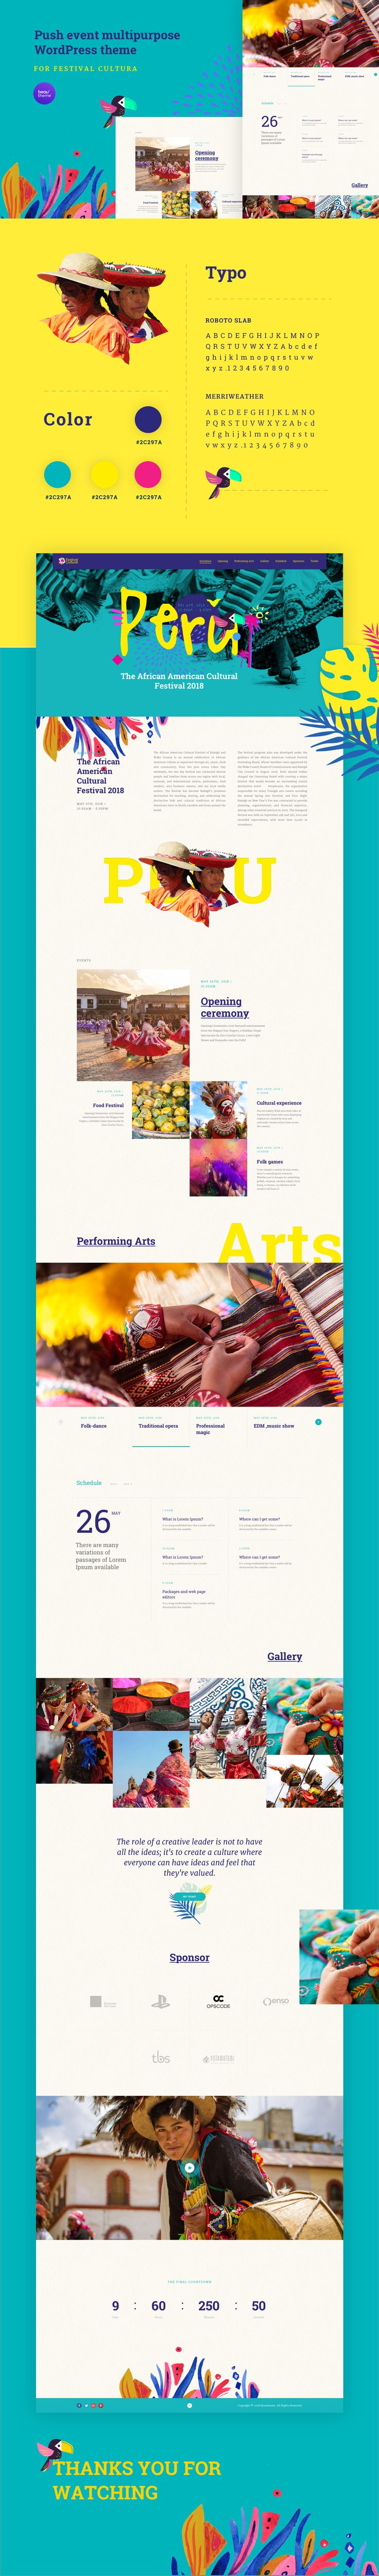 Festival Cultural Landing page - free download on Behance